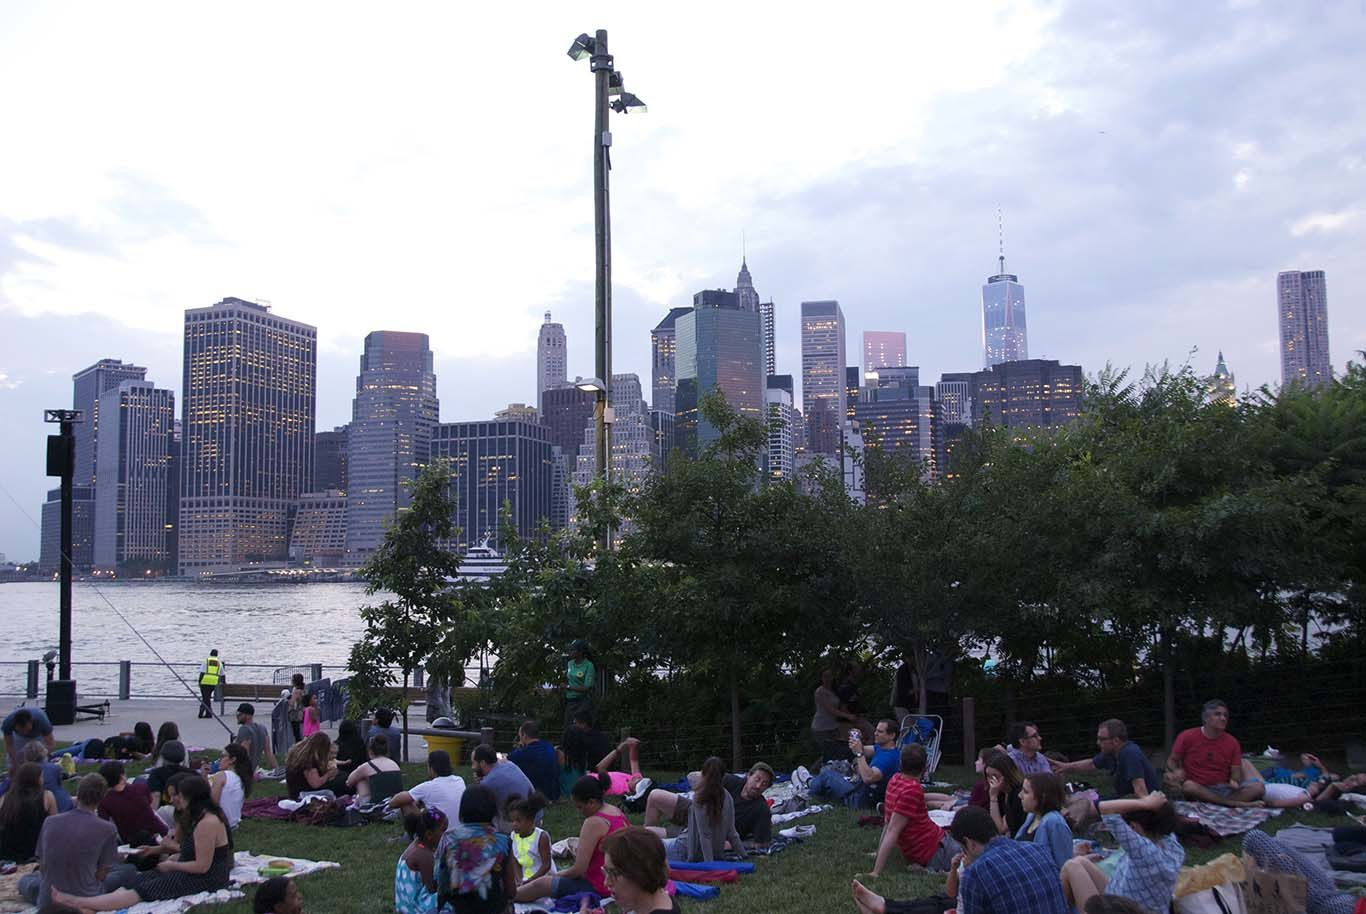 A lovely evening at Brooklyn Bridge Park watching an outdoor movie from the Marx Brothers...